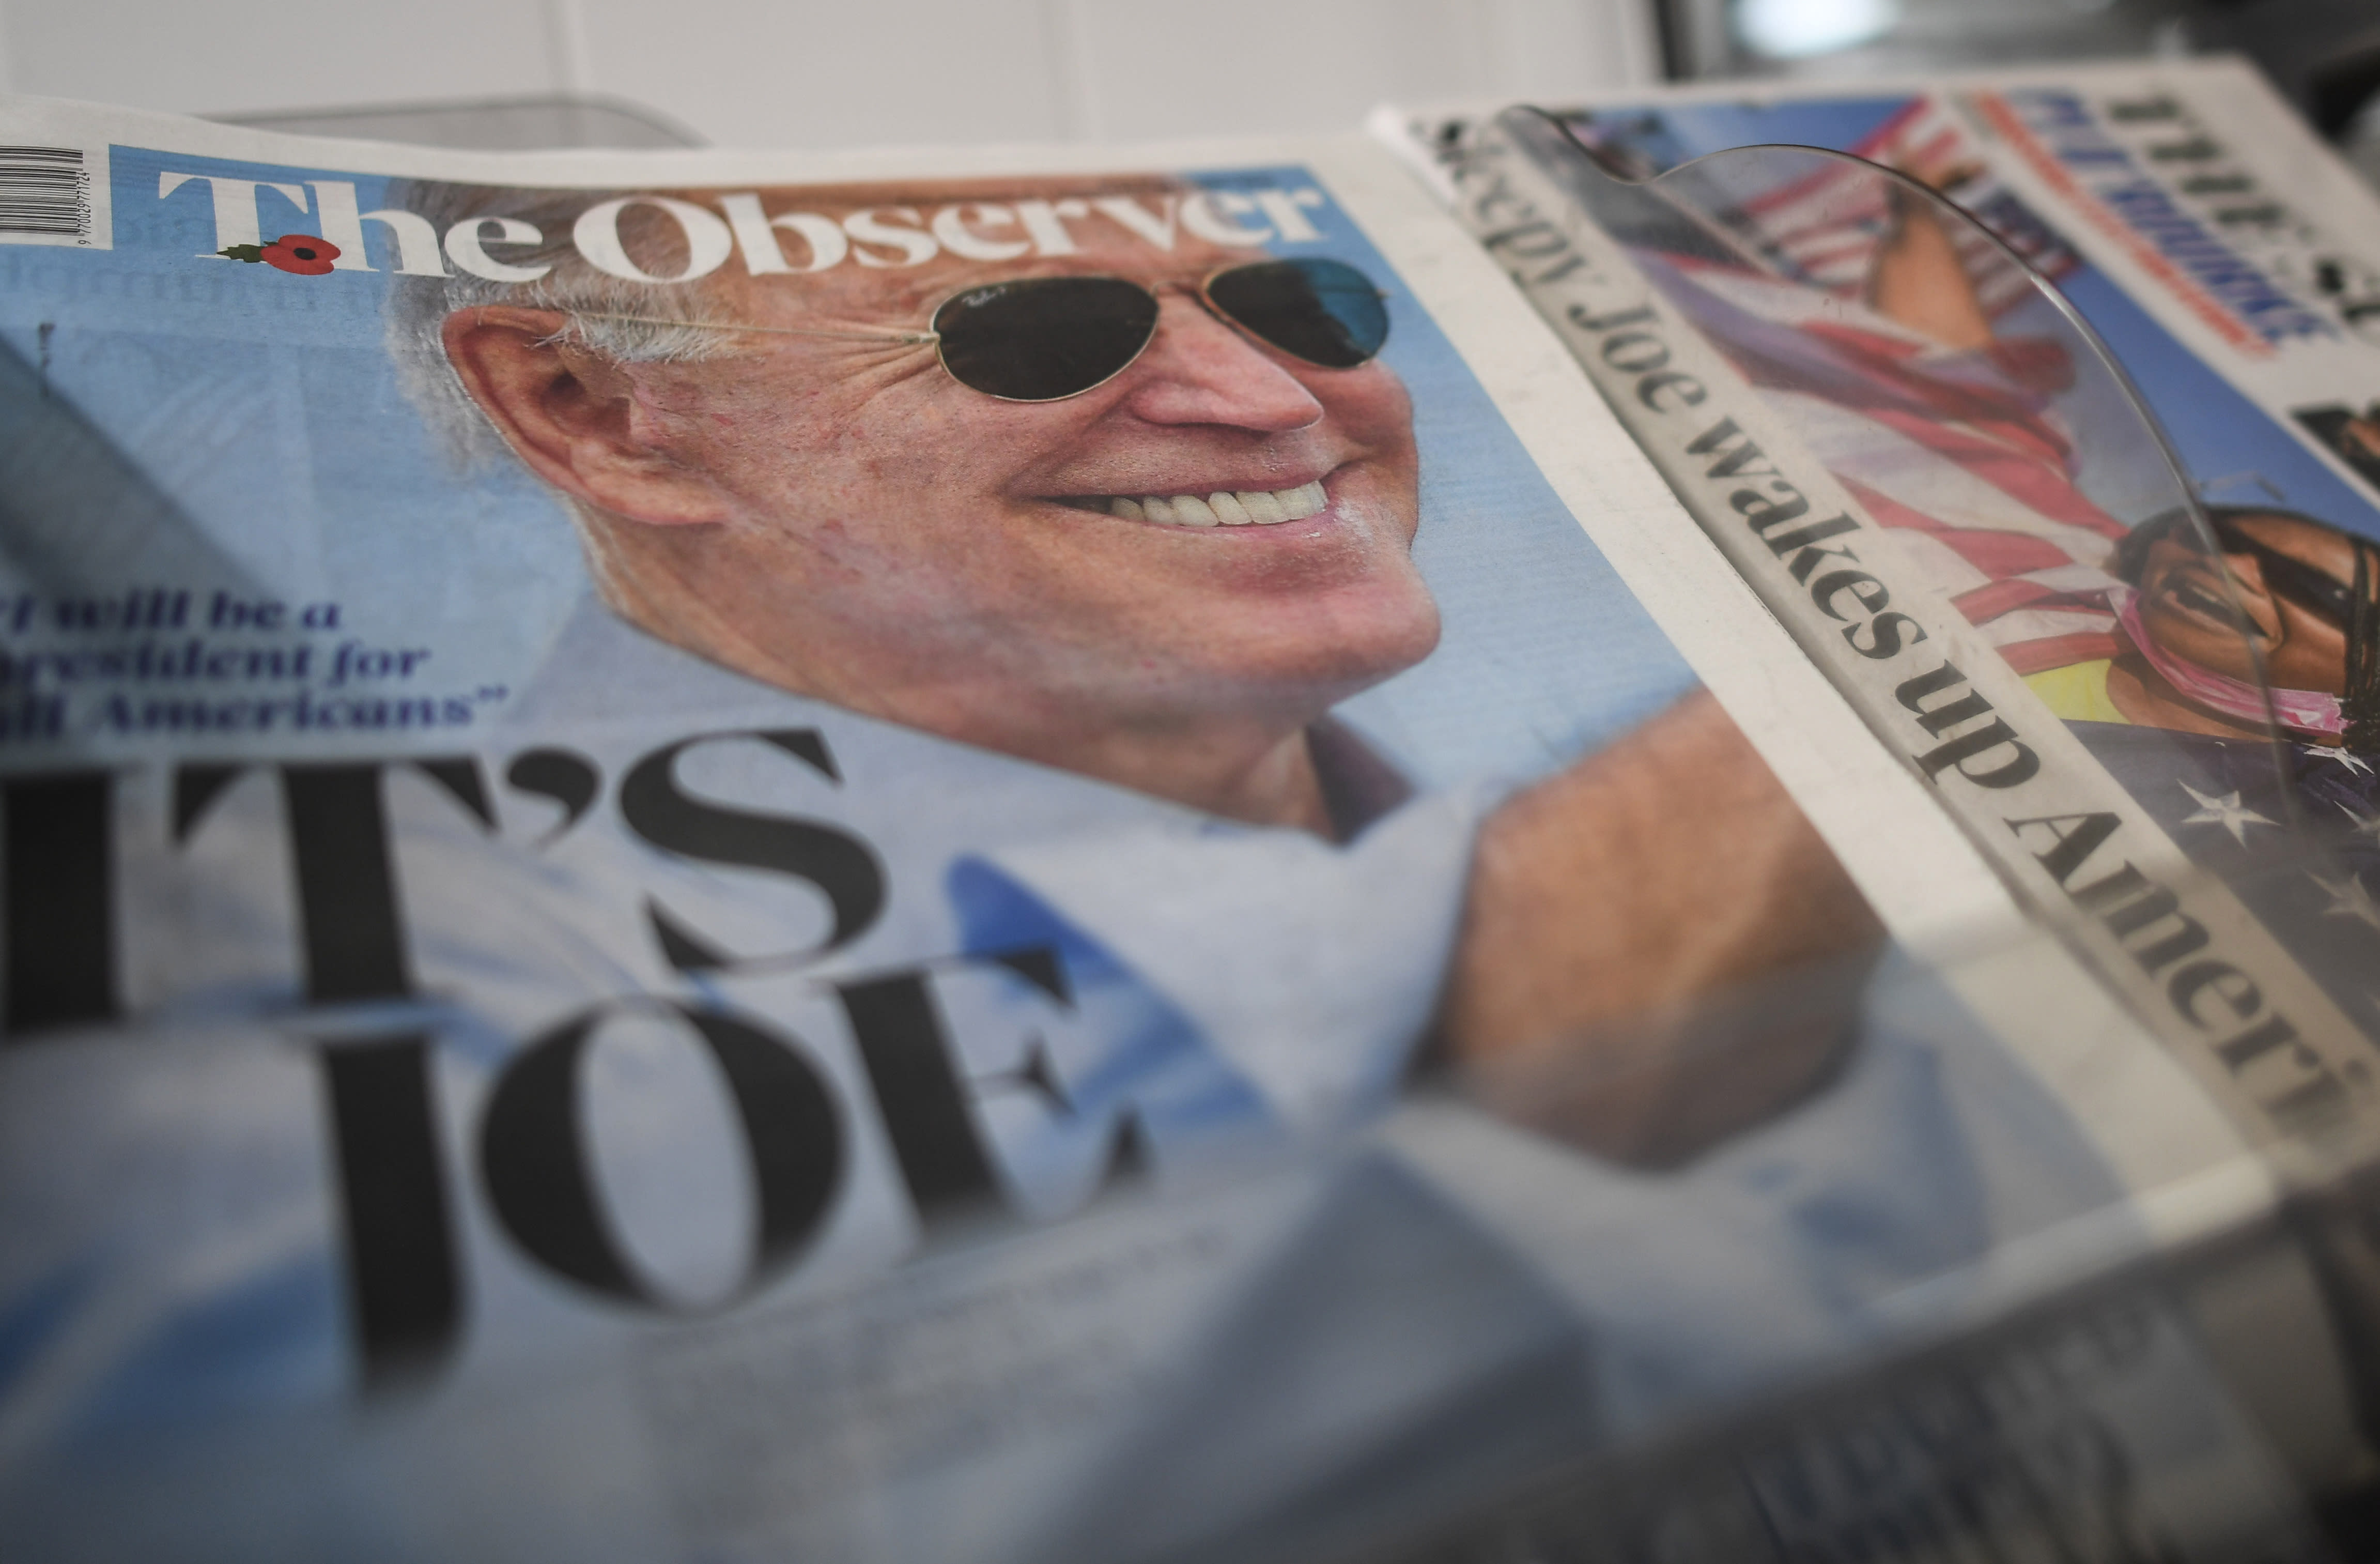 'It's Joe!' How newspapers worldwide reported President-elect Biden's triumph thumbnail